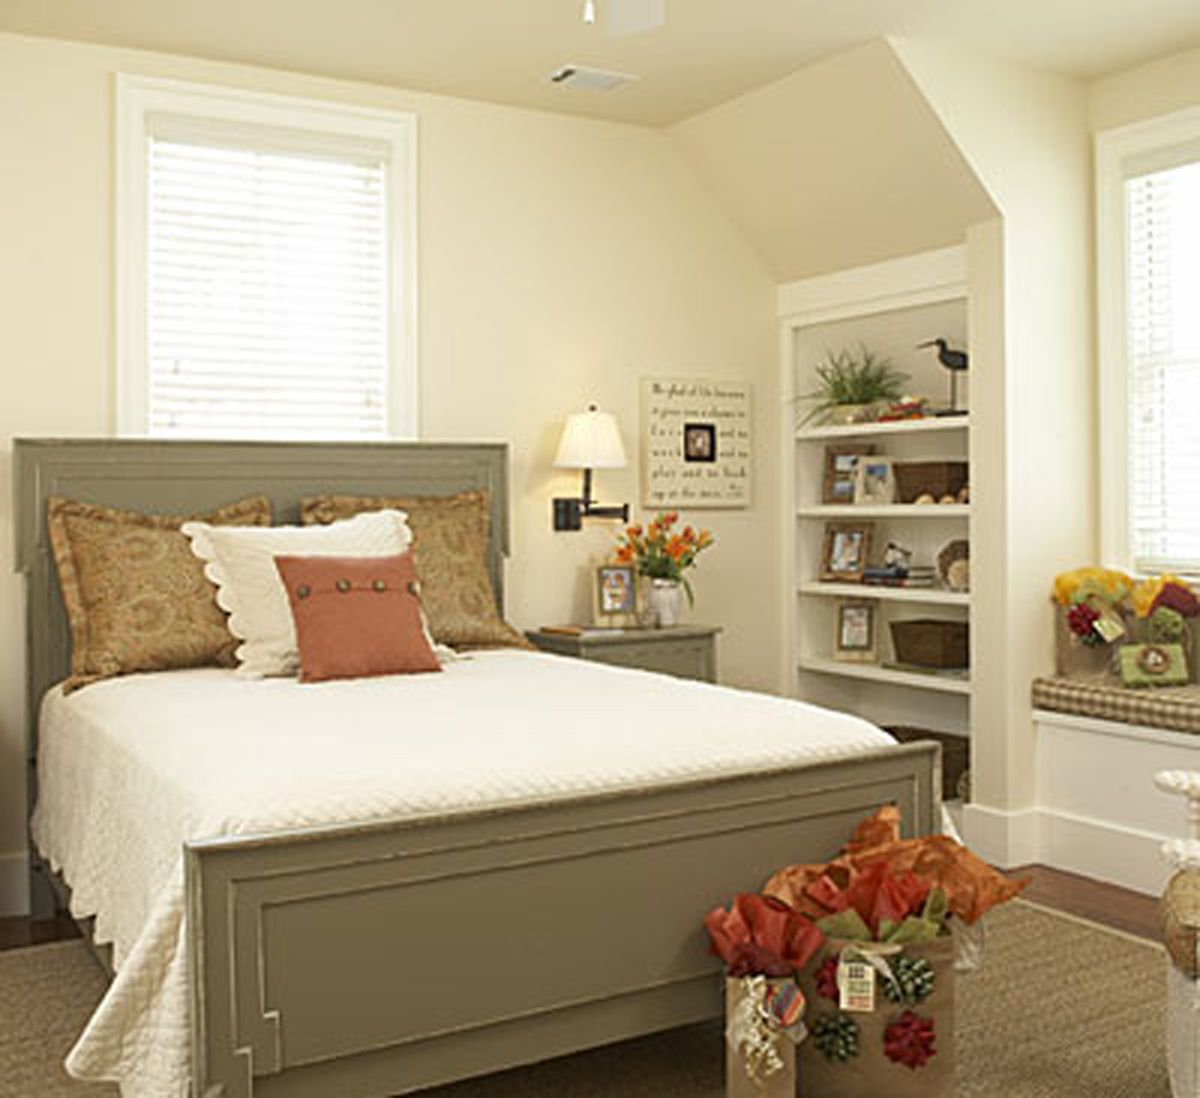 Guest Bedroom Office Ideas Accents on Guest Bedroom